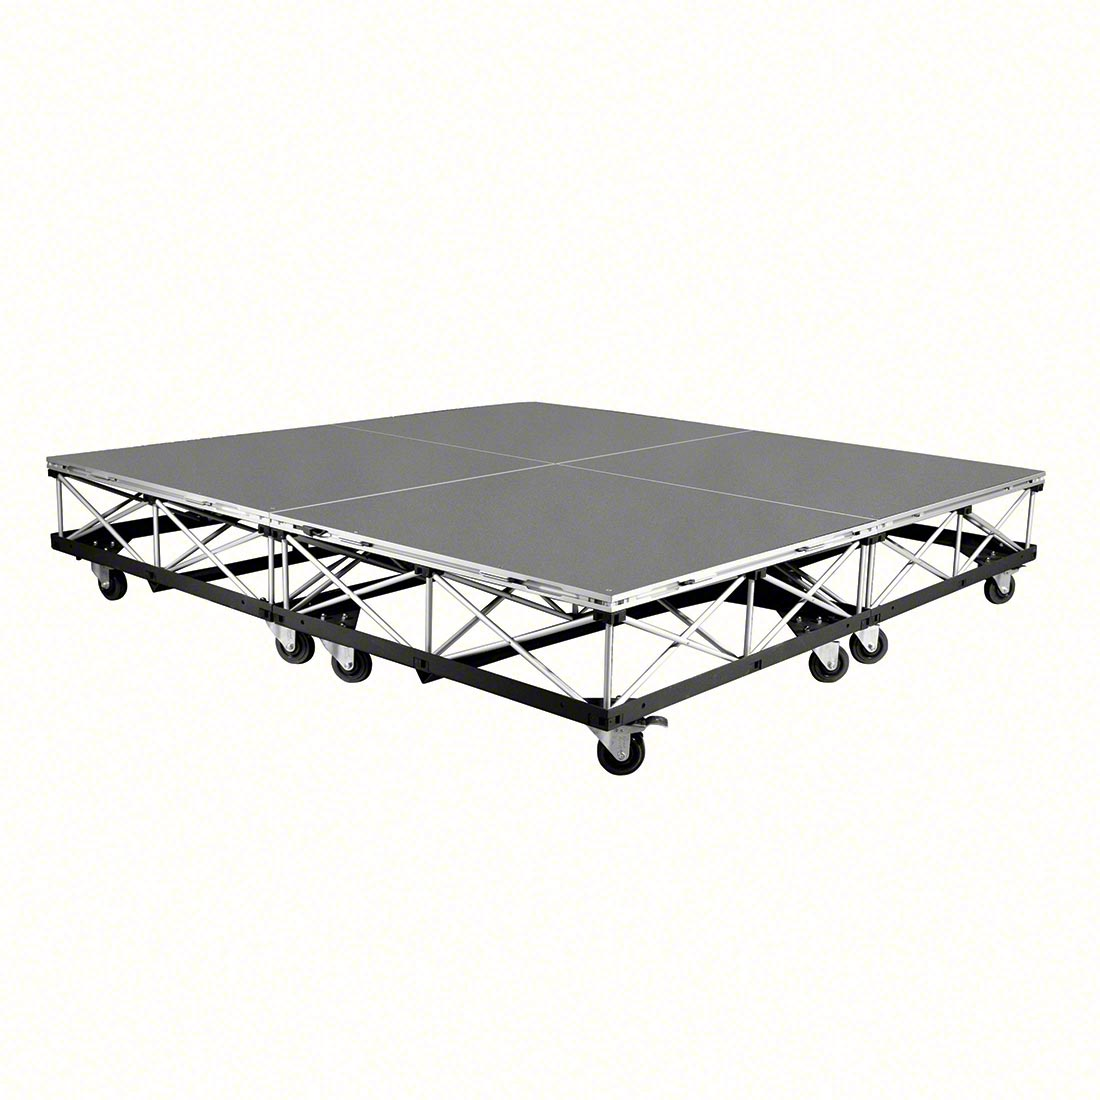 IntelliStage ISSJ Riser Connecting Hardware for Portable Stage Risers//Steps